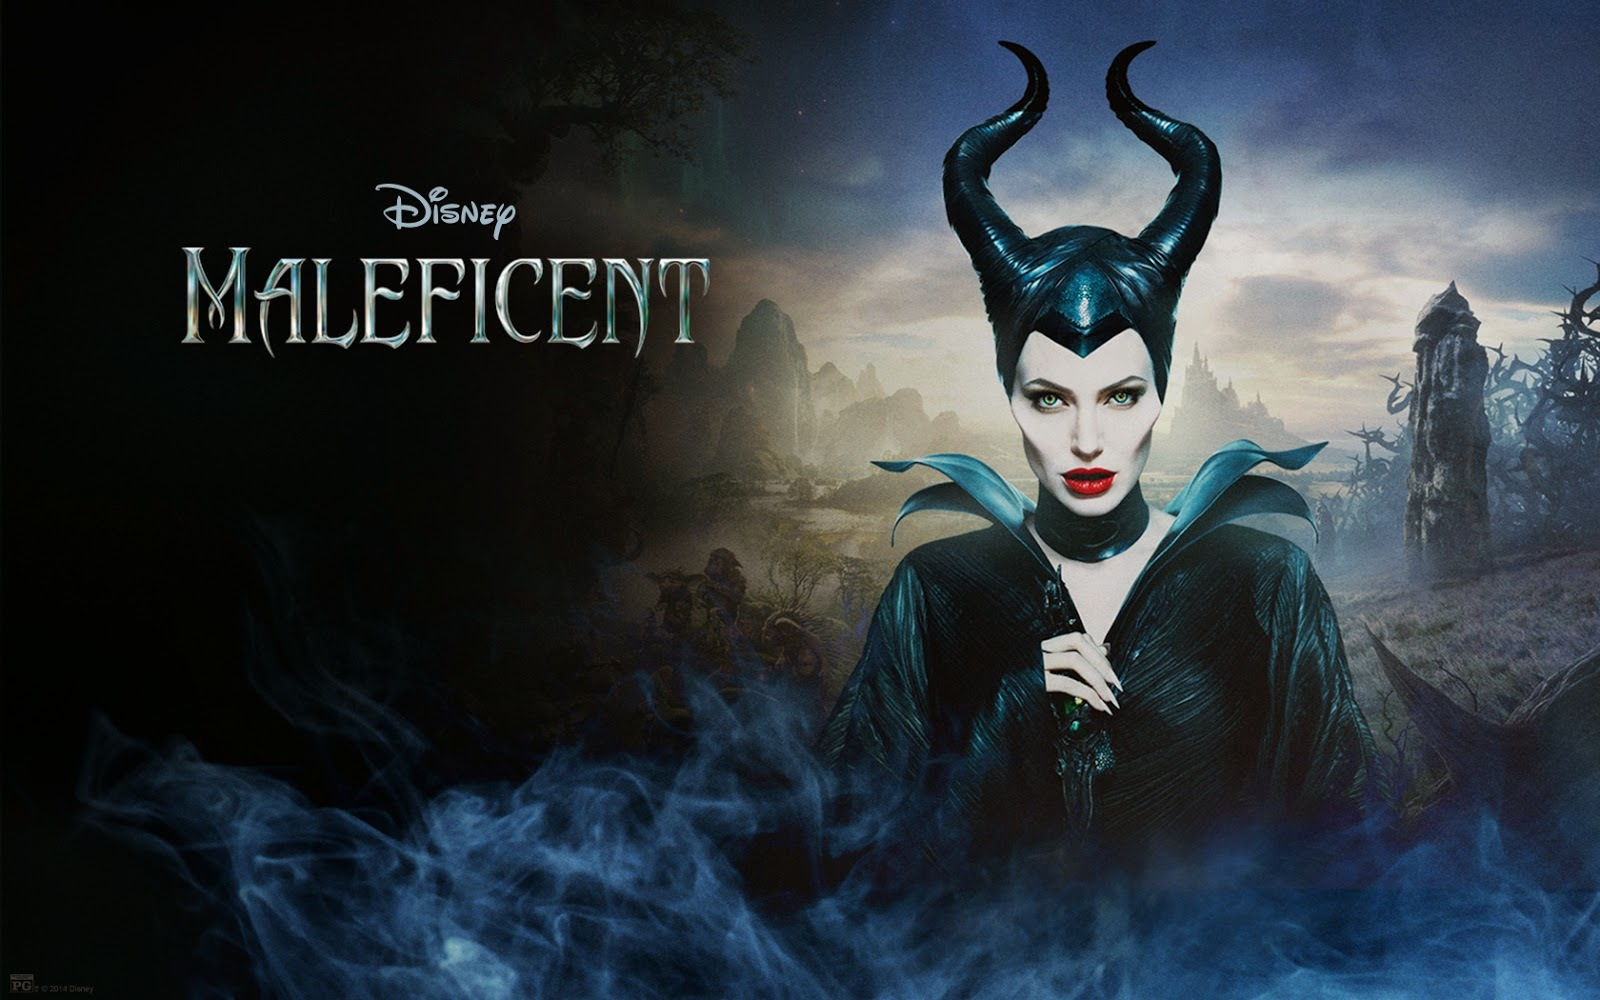 Maleficent Movie 2014 Hd Ipad Iphone Wallpapers: Malefique Posters Fonds Ecrans9